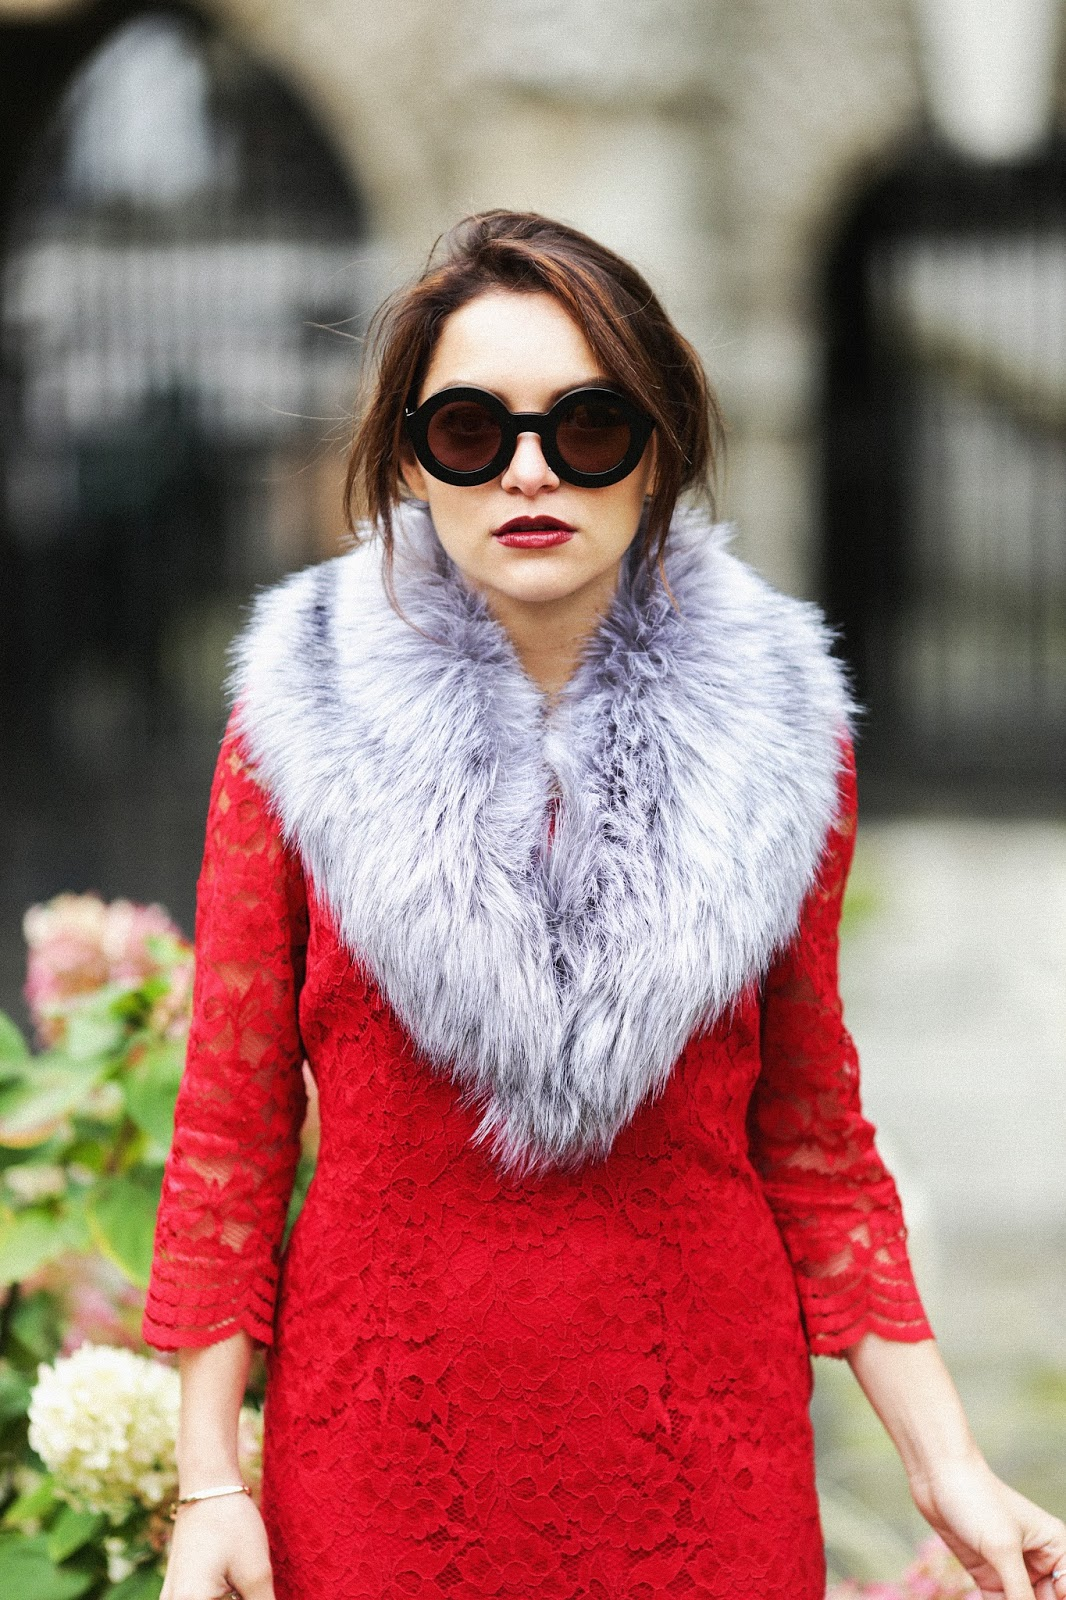 Whitney's Wonderland London Luxury Fashion Blogger wears Precis Petite red lace dress, Wildfox twiggy deluxe round sunglasses, and Boden kensington blue knee high boots.